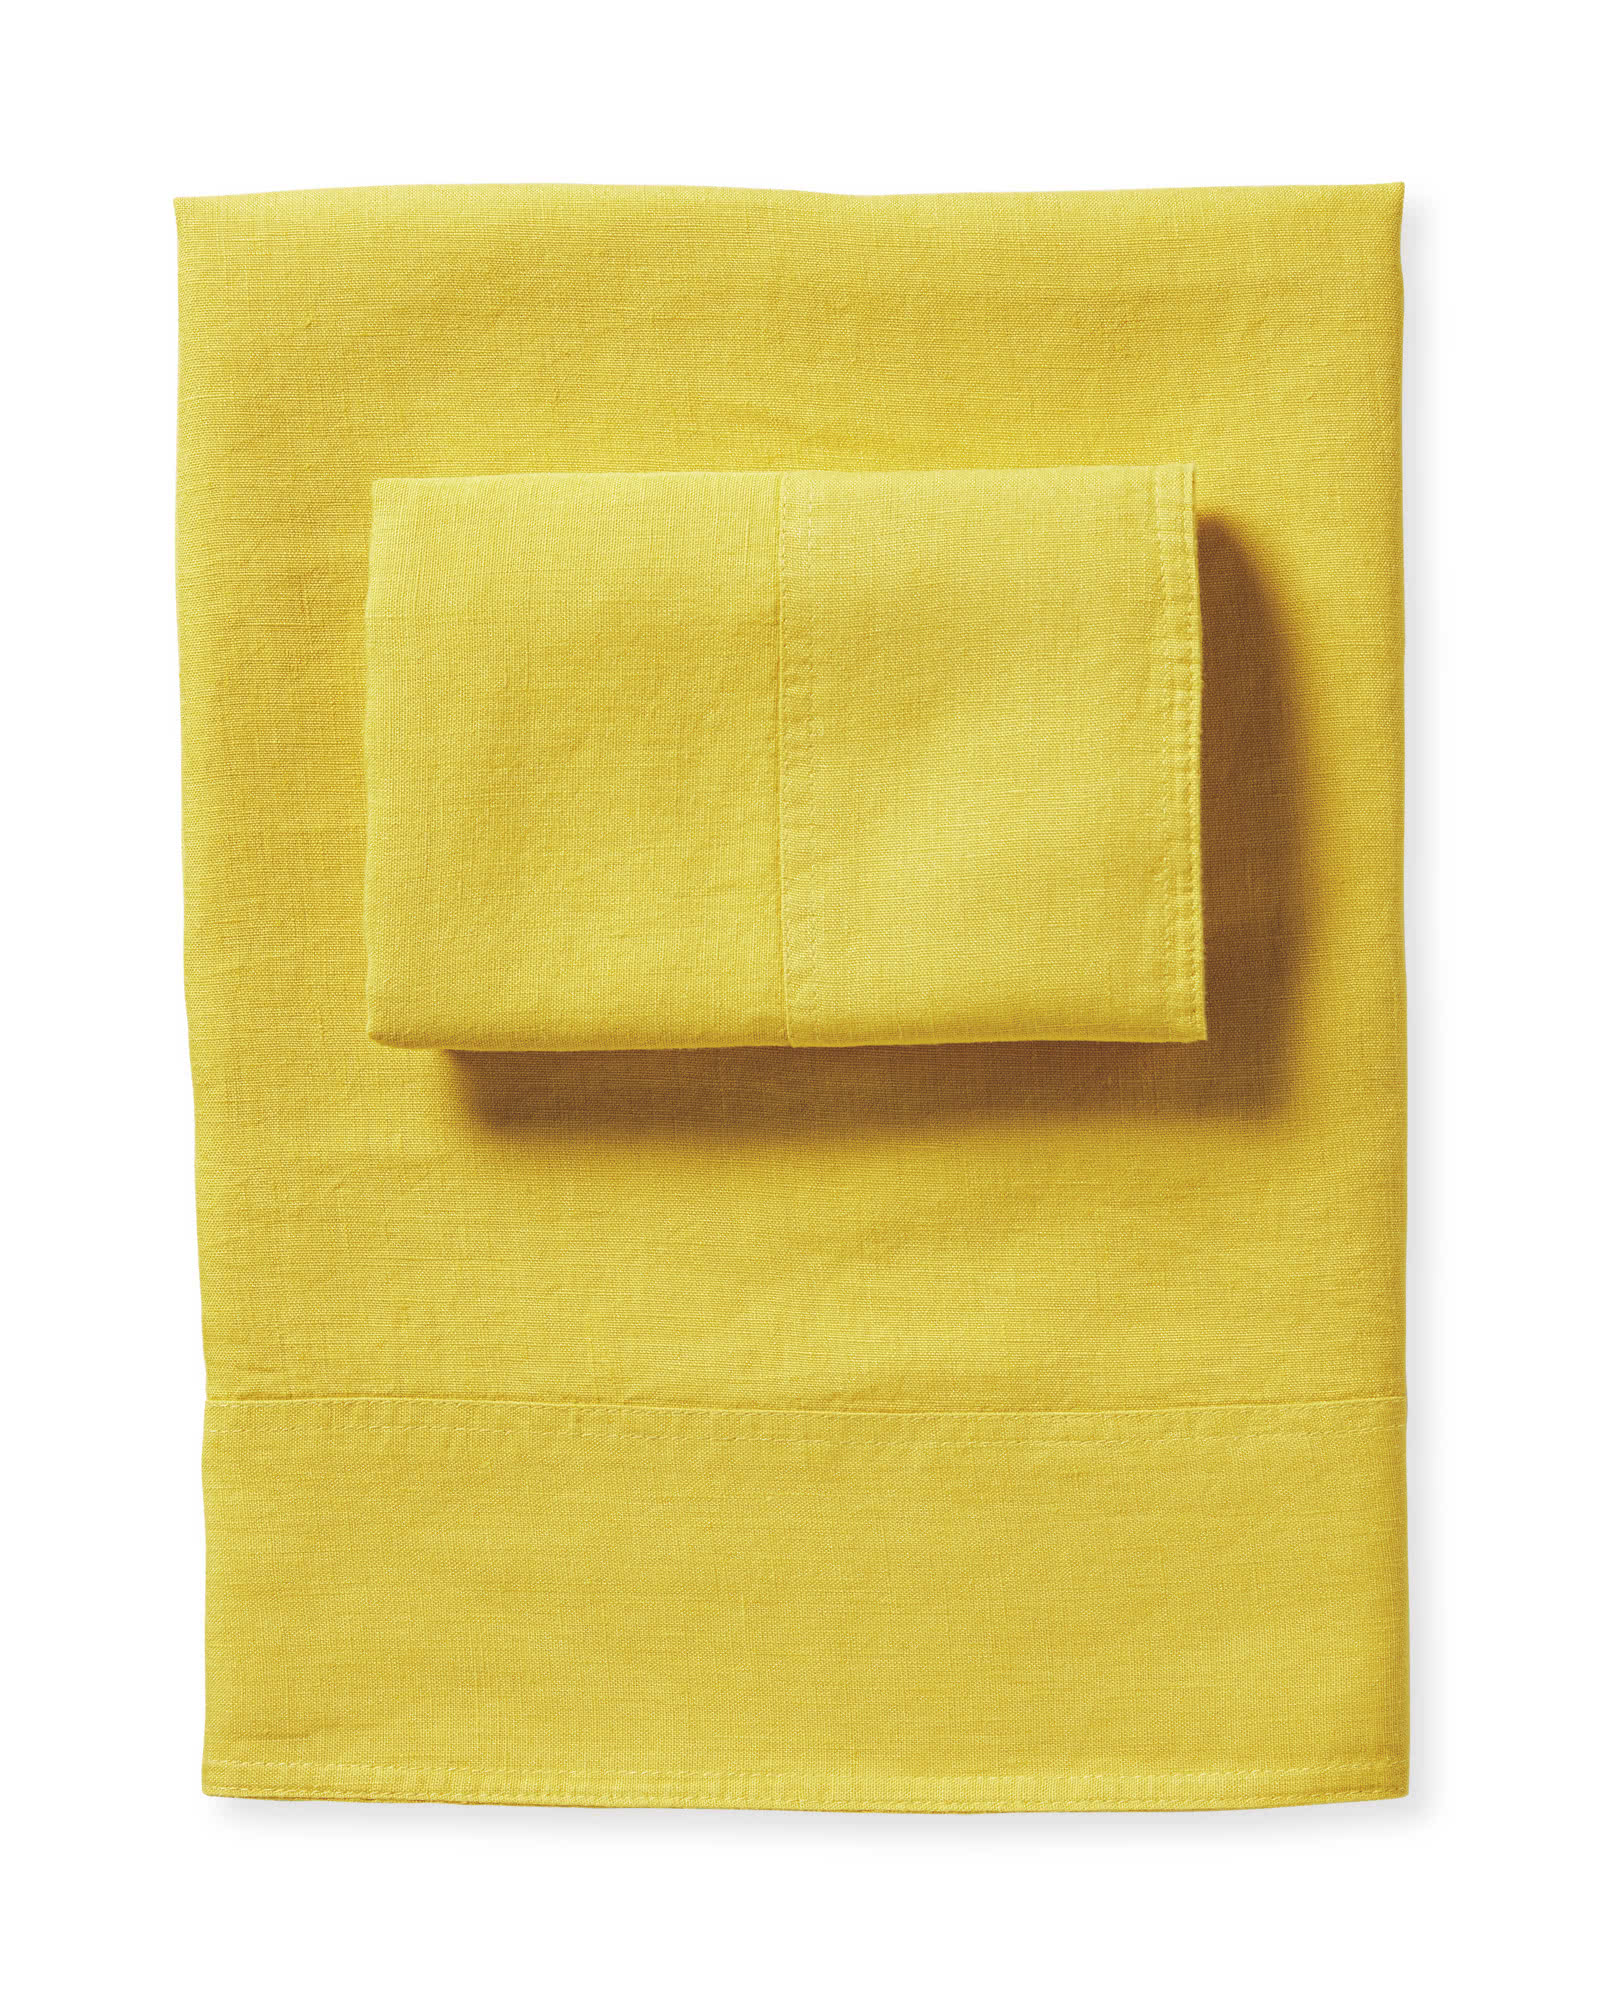 Positano Linen Sheet Set, Yarrow